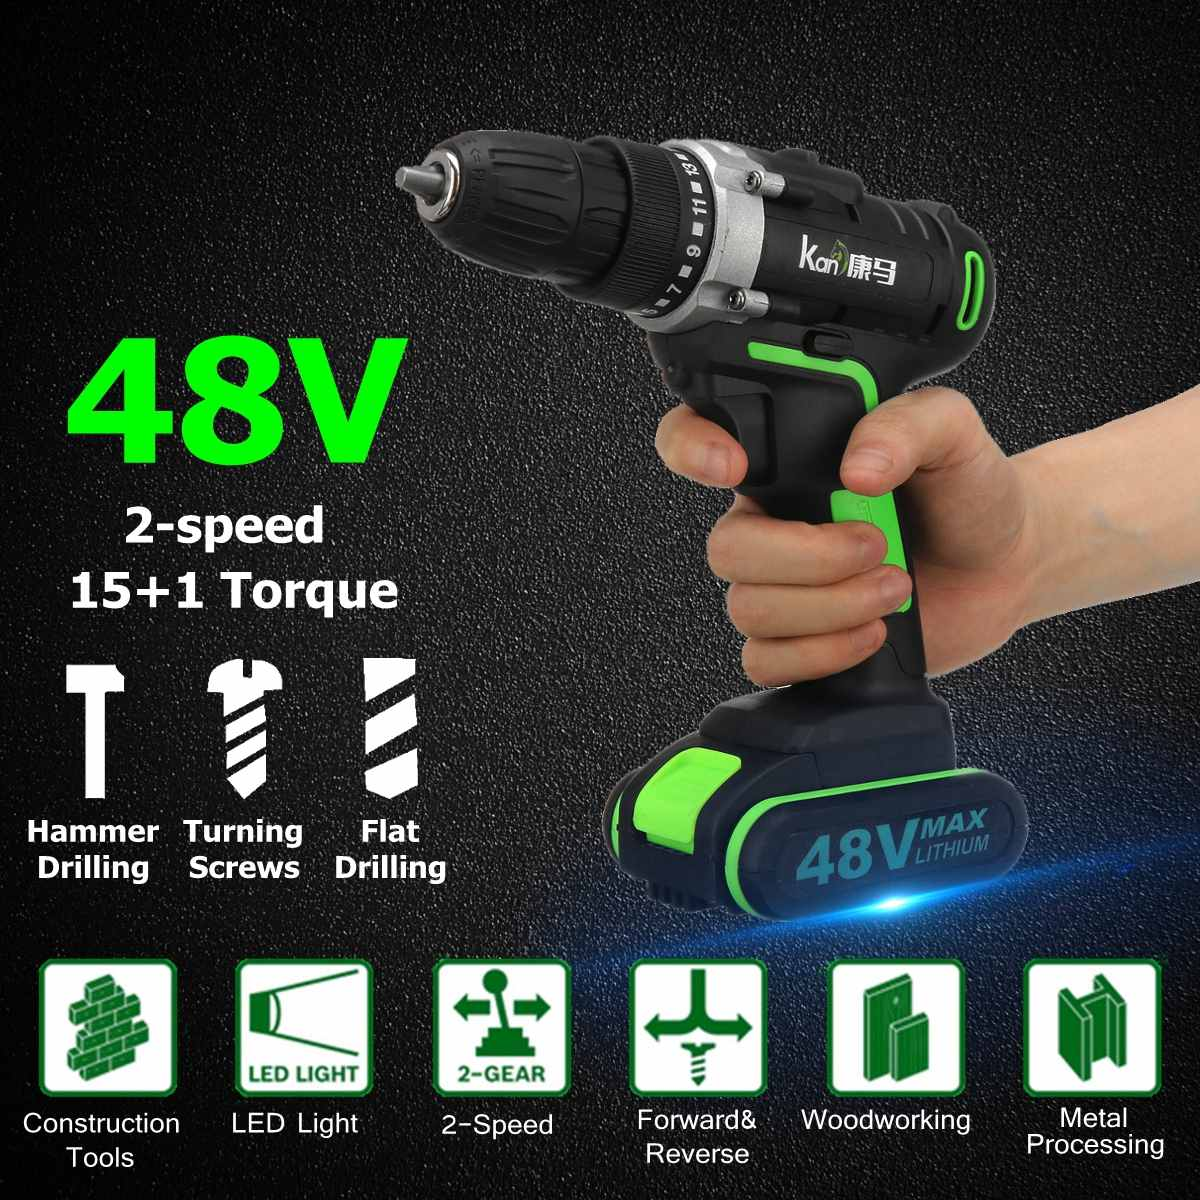 48V Cordless Electric Drill Wrench Double Speed Adjustment LED lighting Carpenter Power Tools48V Cordless Electric Drill Wrench Double Speed Adjustment LED lighting Carpenter Power Tools